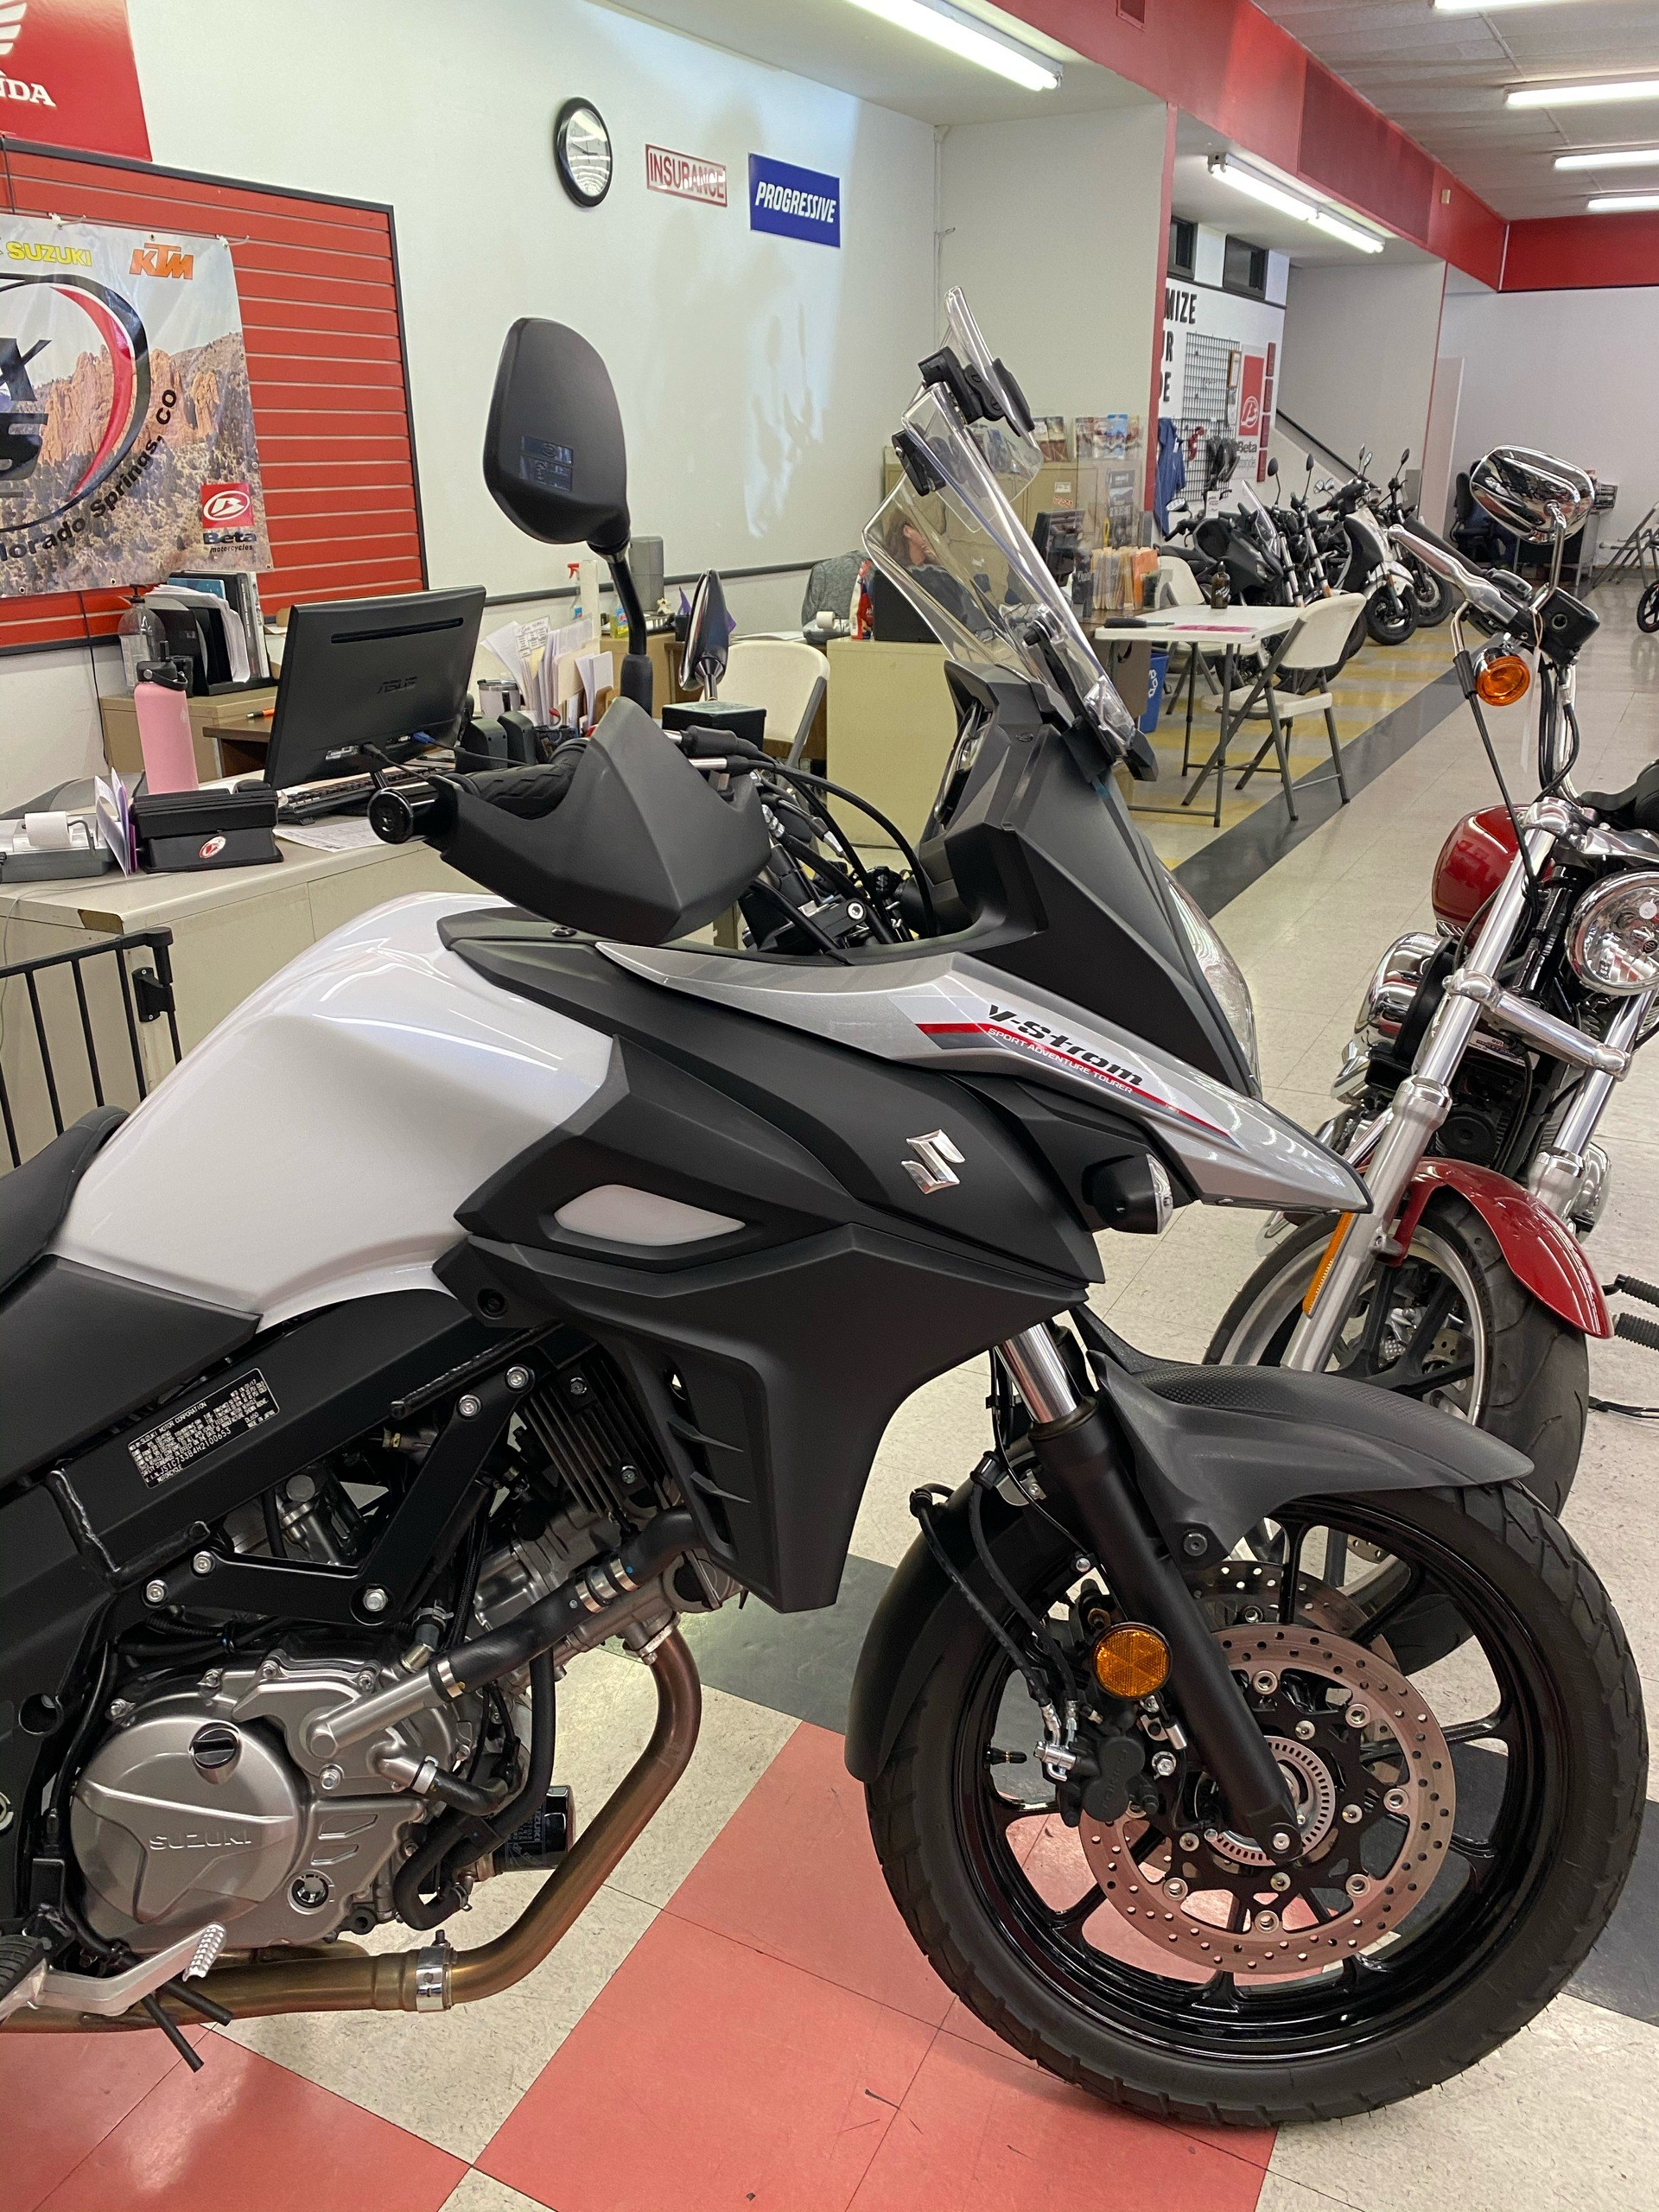 2017 Suzuki V-Strom 650 in Colorado Springs, Colorado - Photo 6